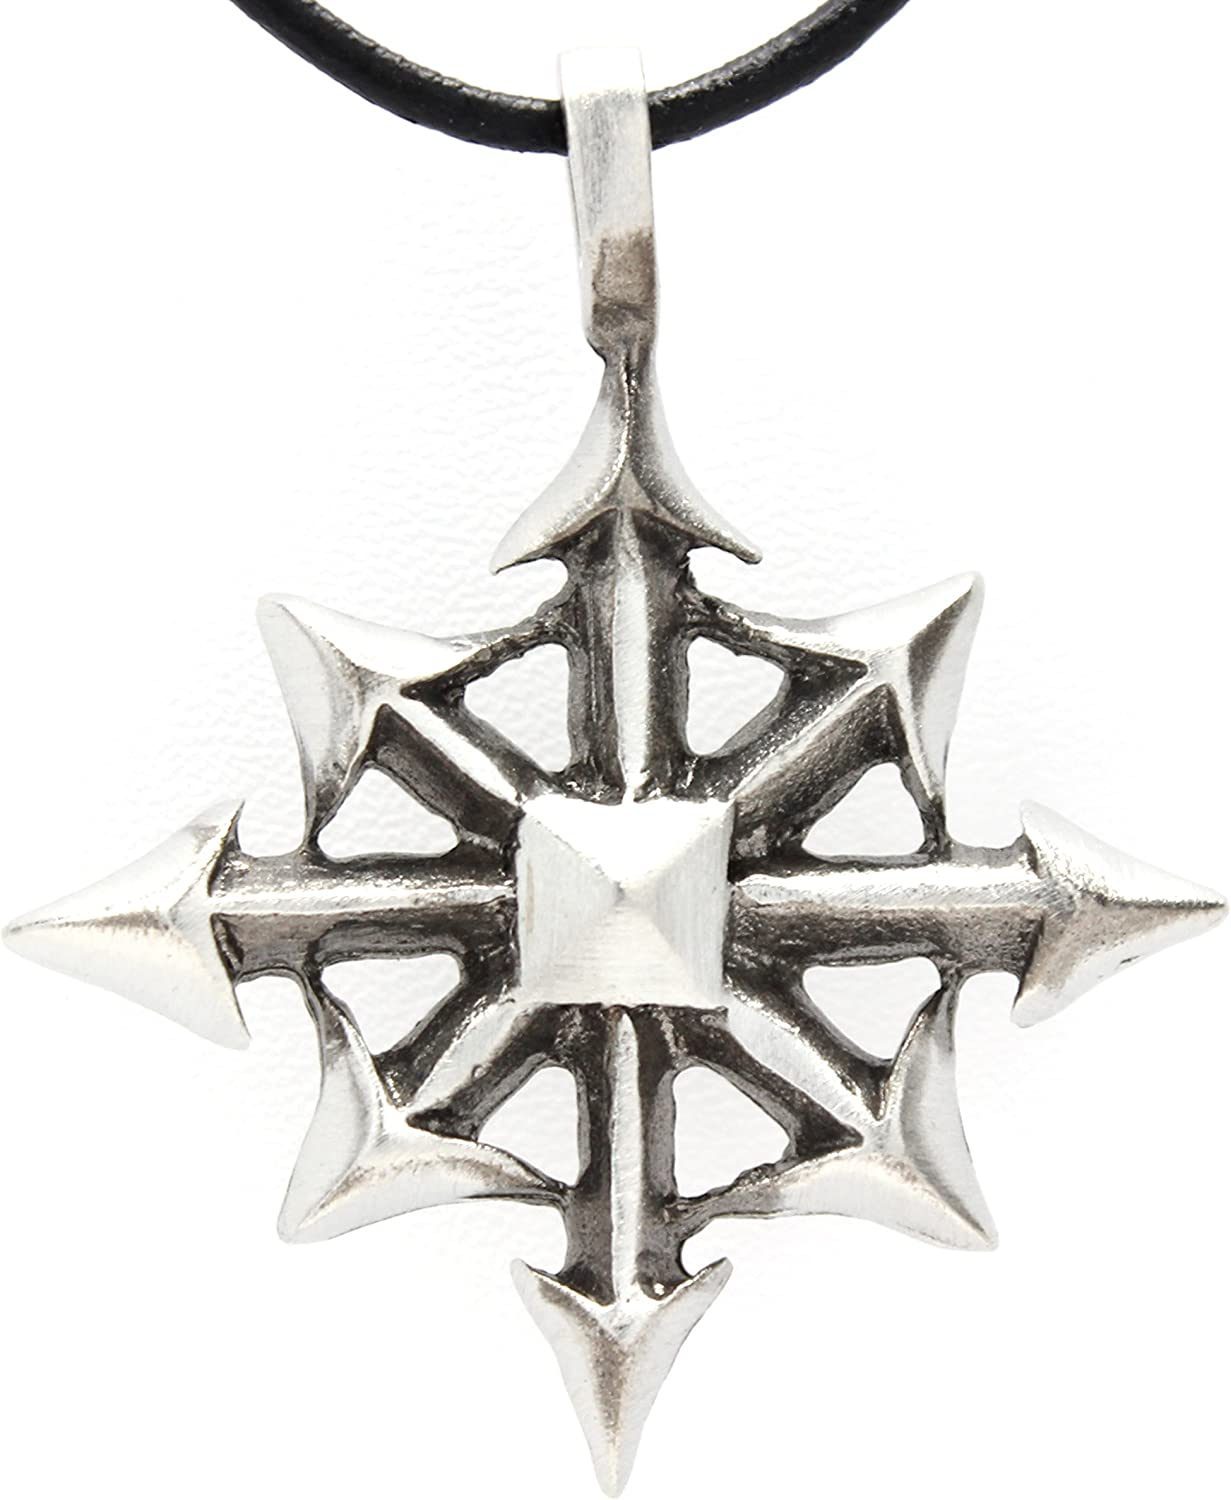 Trilogy Jewelry Pewter Chaos Star Magic Pendant on Leather Necklace